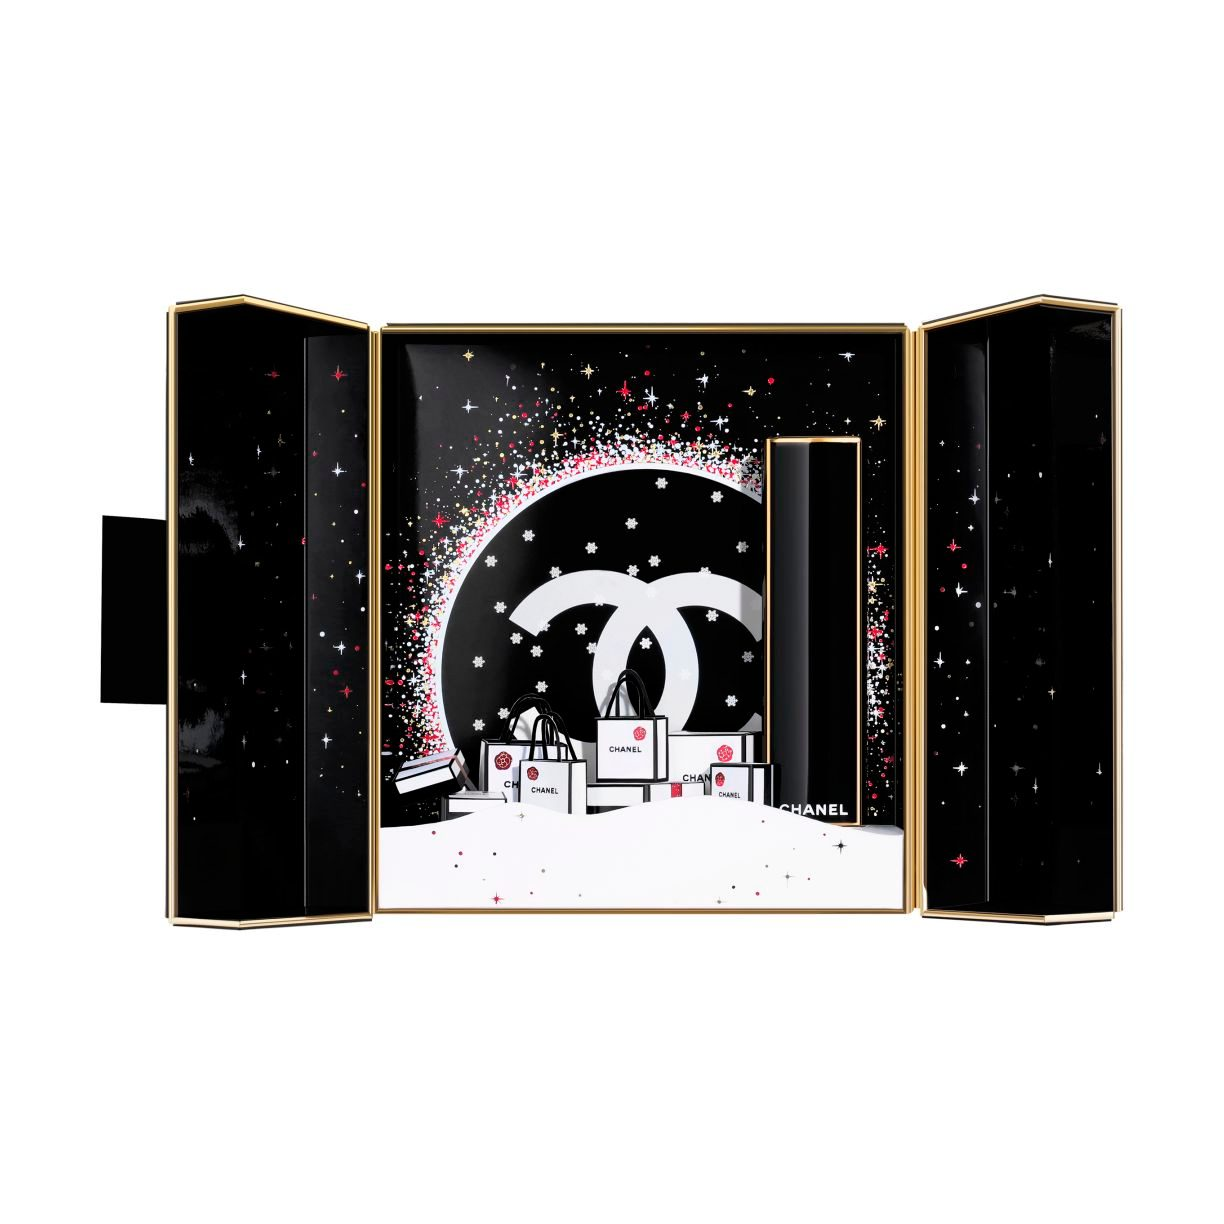 COFFRET ROUGE ALLURE EXCLUSIEVE CREATIE - LIMITED EDITION. 837 - ROUGE SPECTACULAIRE